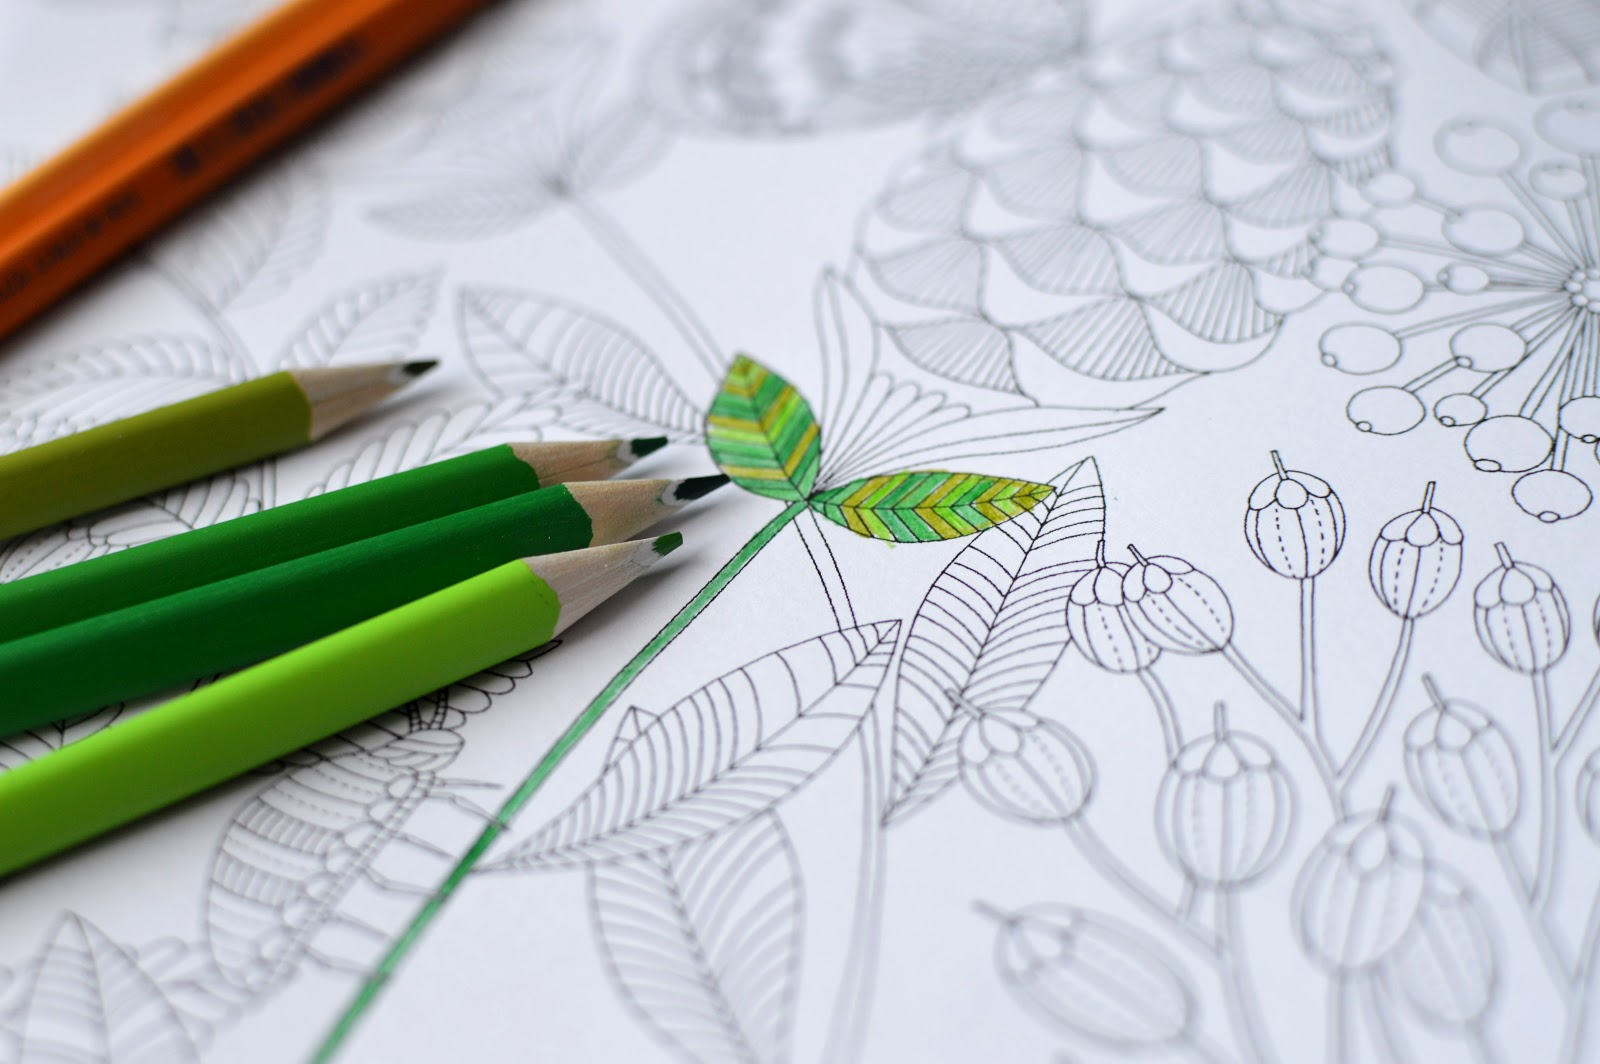 , Millie Marotta's Tropical Wonderland: a colouring book adventure